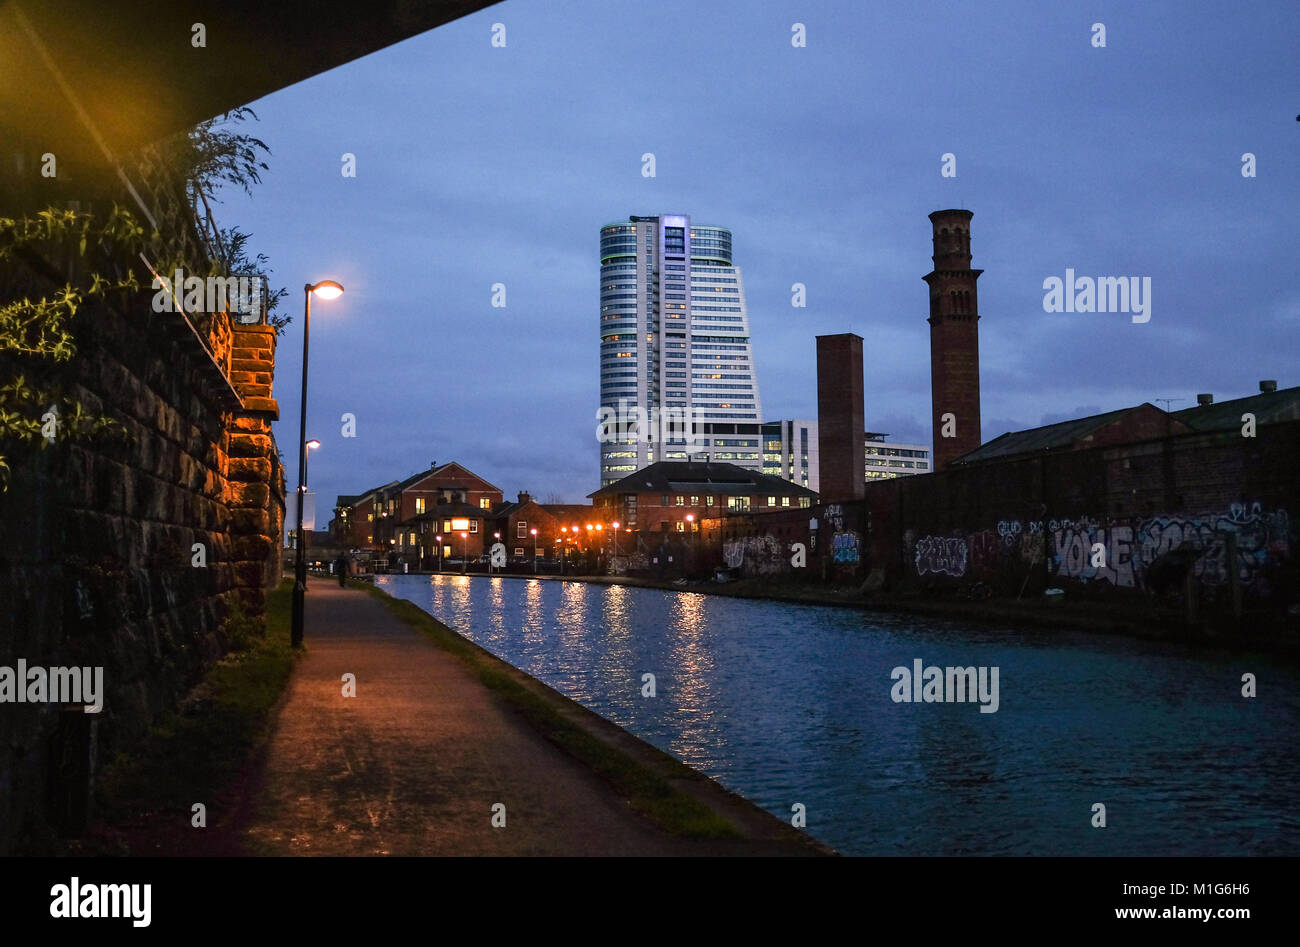 Leeds Yorkshire UK - The Aire Valley canal towpath - Stock Image